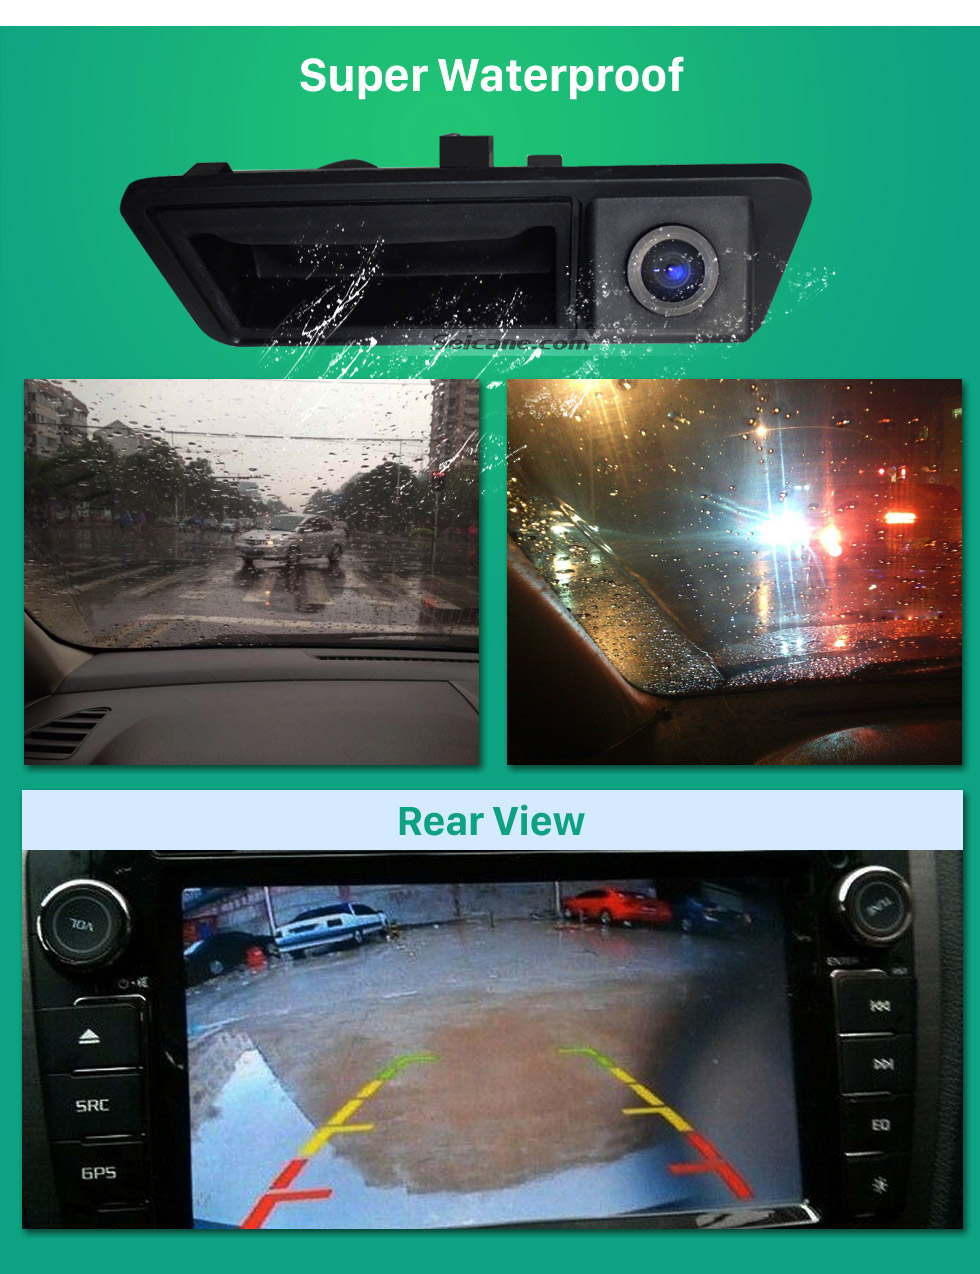 Super Waterproof HD Wired Car Parking Backup Reversing Camera for 2011-2013 VW Volkswagen Touareg 2012-2013 Sharan Waterproof four-color ruler and LR logo Night Vision free shipping